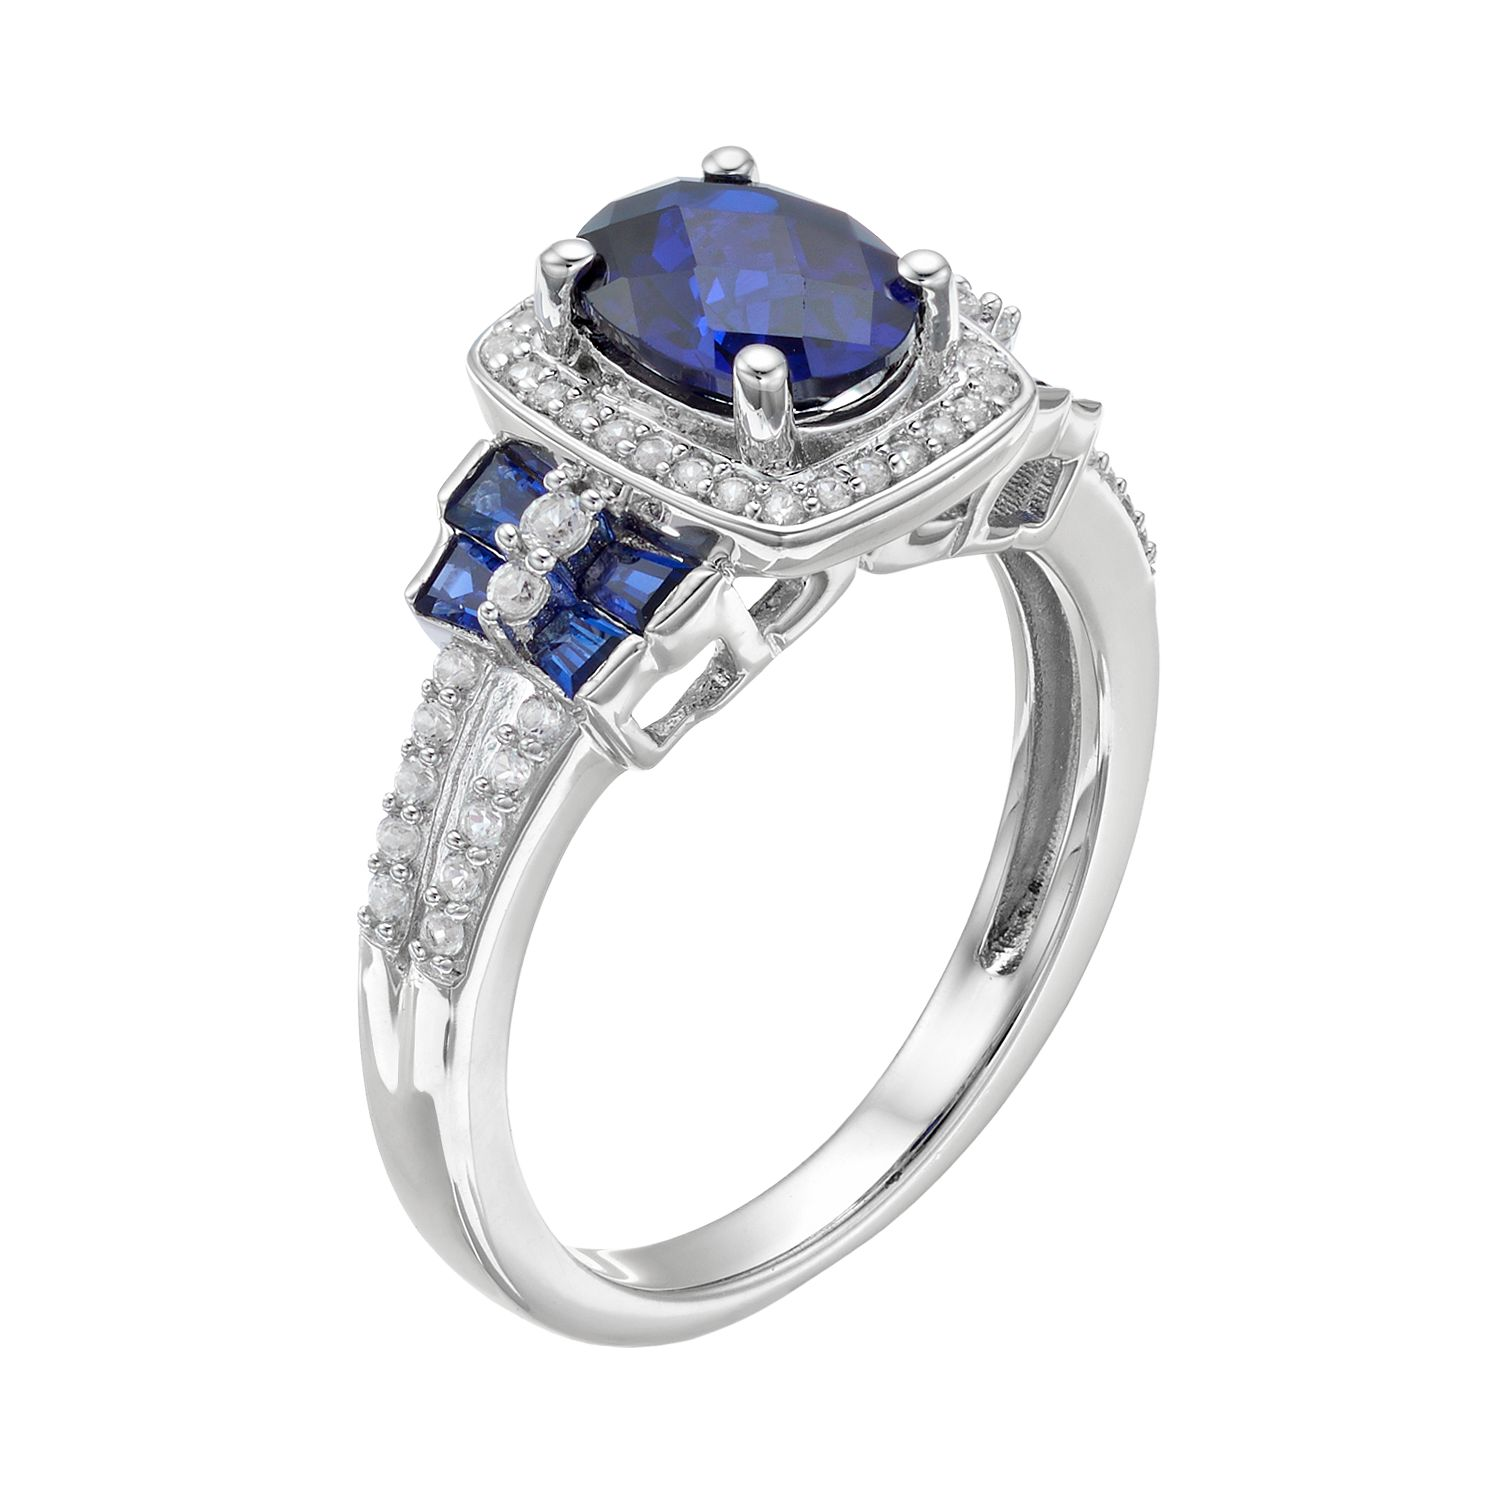 diamonds centre side pin stone either royal asprey sold blue with cut rings oval